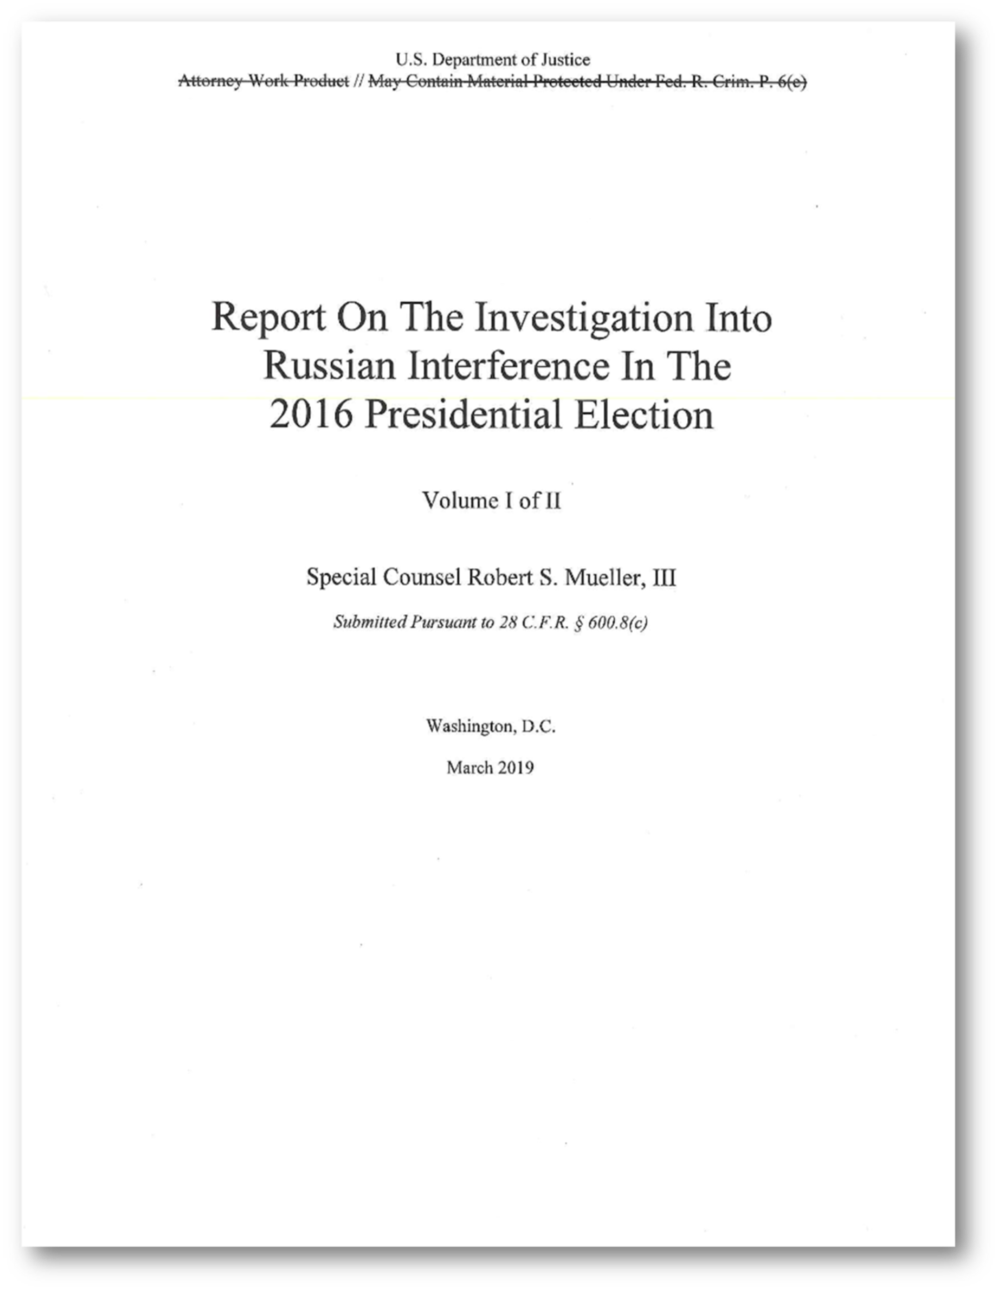 Cover page of  The Mueller Report , or  Report On The Investigation Into Russian Interference In The 2016 Presidential Election . Click to visit U.S. Department of Justice page to download PDF of report.